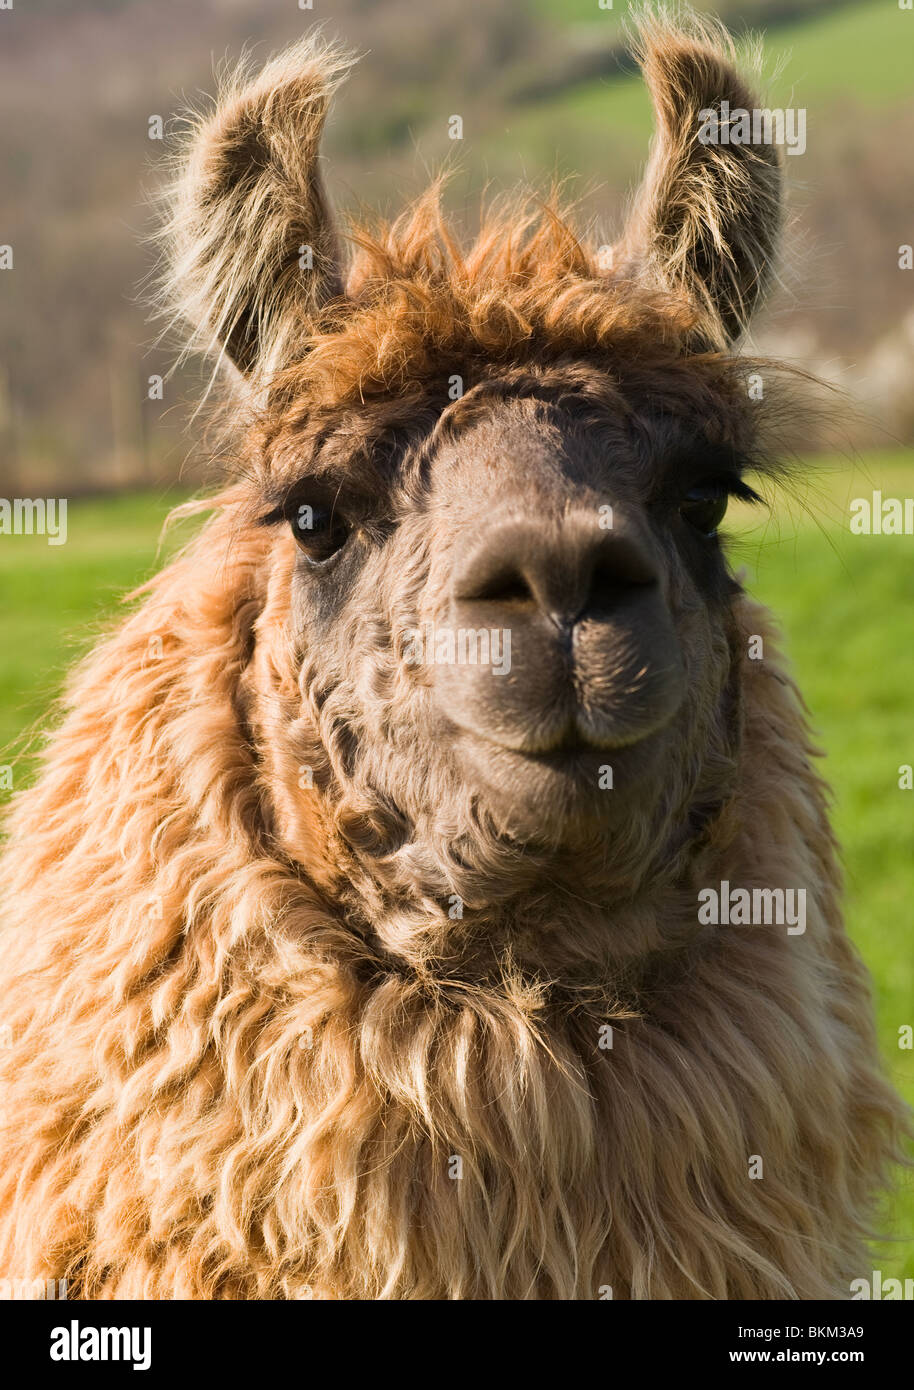 Closeup of a Llamas Head and Face with Ears Pricked Up in a Field in Laval Aveyron France - Stock Image